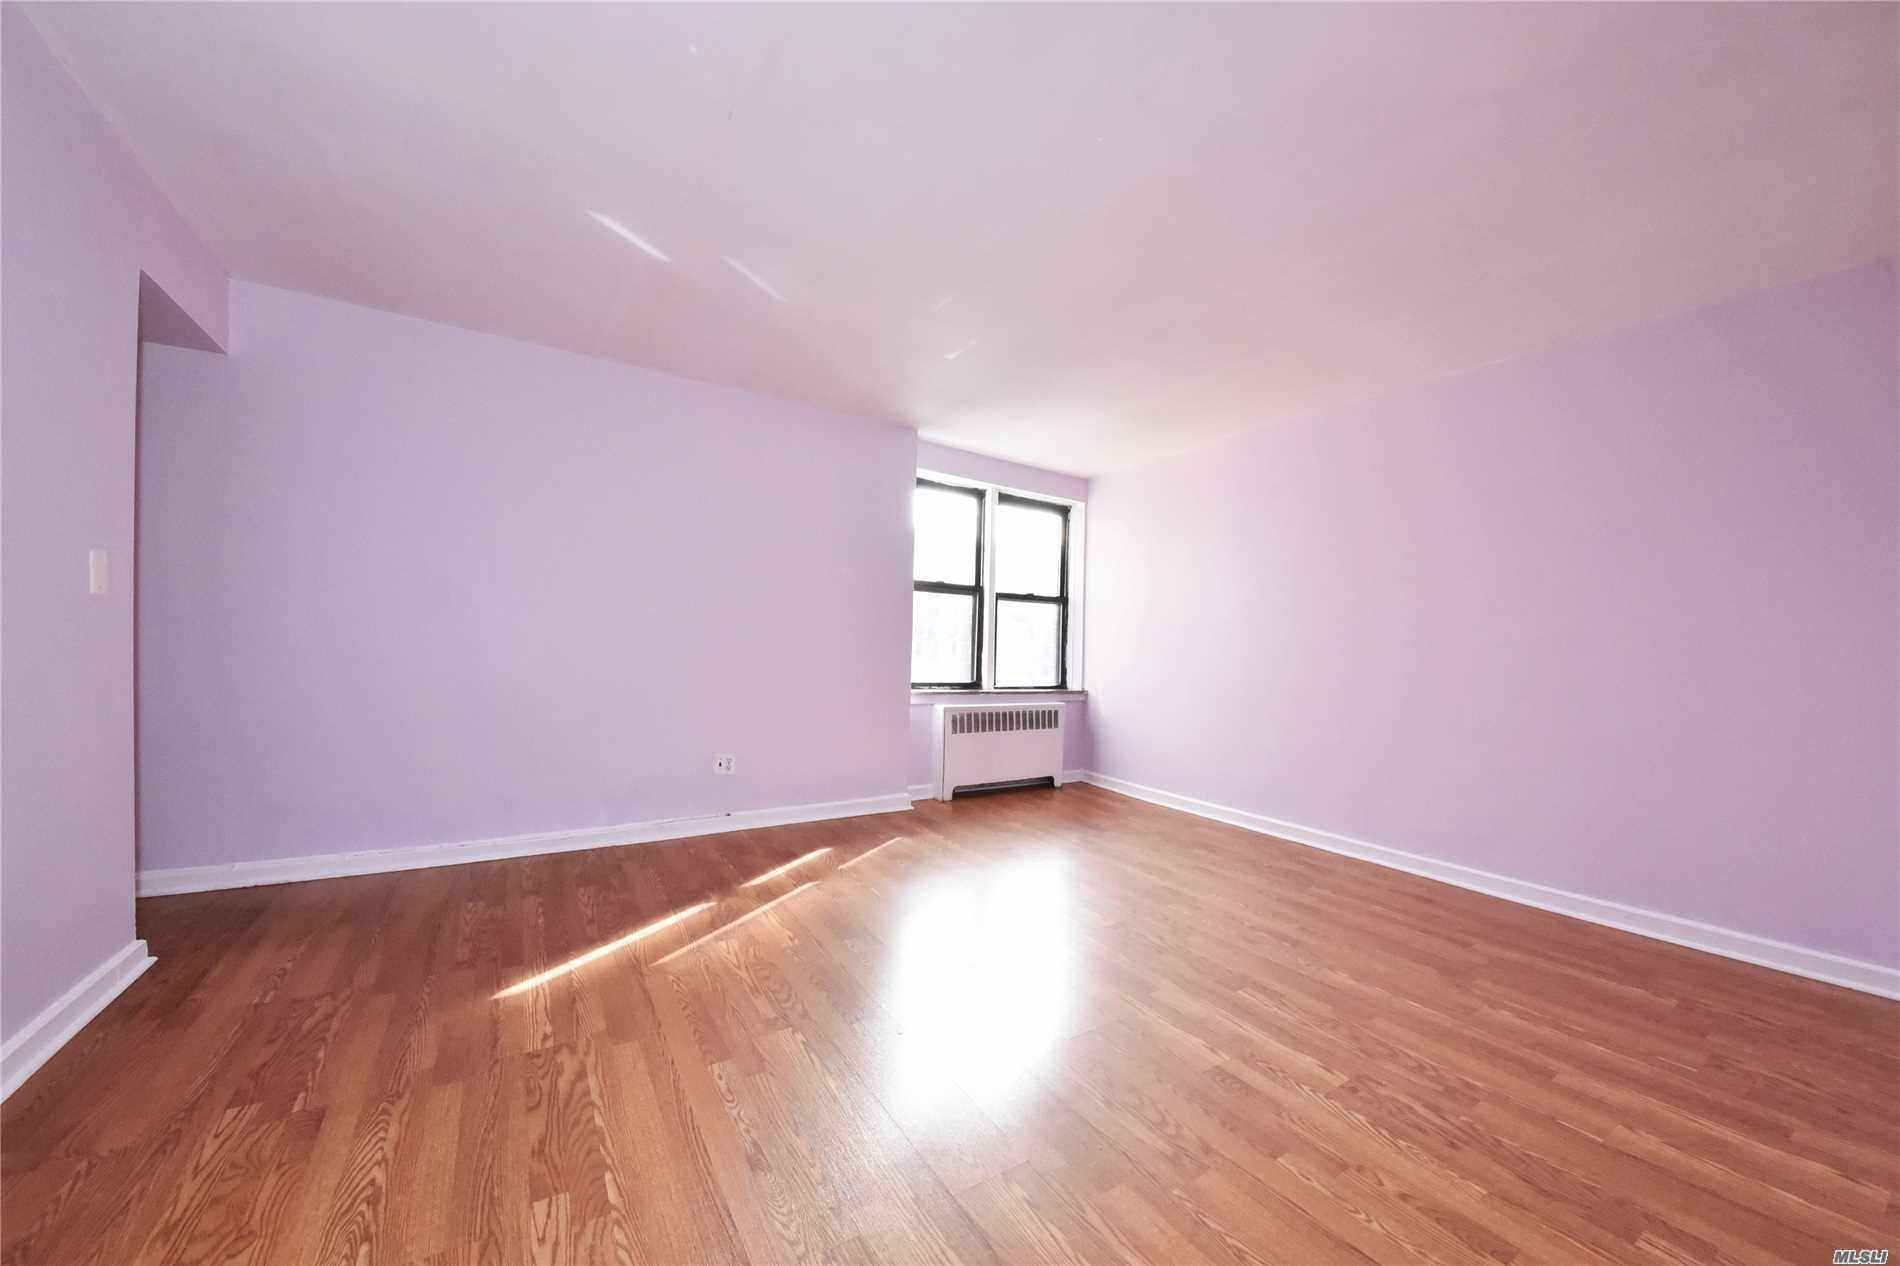 Fantastically Located Large 1 Bedroom Co-Op In Prime Flushing Close To All! High Floor(6th) & Corner Unit! Spacious And Bright With Windows In Every Room. Quiet & Well Managed With Beautiful Garden, Parking Available, Subletting Allowed After 2 Yrs, Low Maintenance Only $586! Financial Requirement$43K+. Walking Distance To Buses, Lirr (2 Blocks To Murray Hill Station), 7 Train (8 Mins Walk), Walking Distance To Downtown Flushing Main St. Restaurants, Groceries, Shops & More. This Is A Must See!!